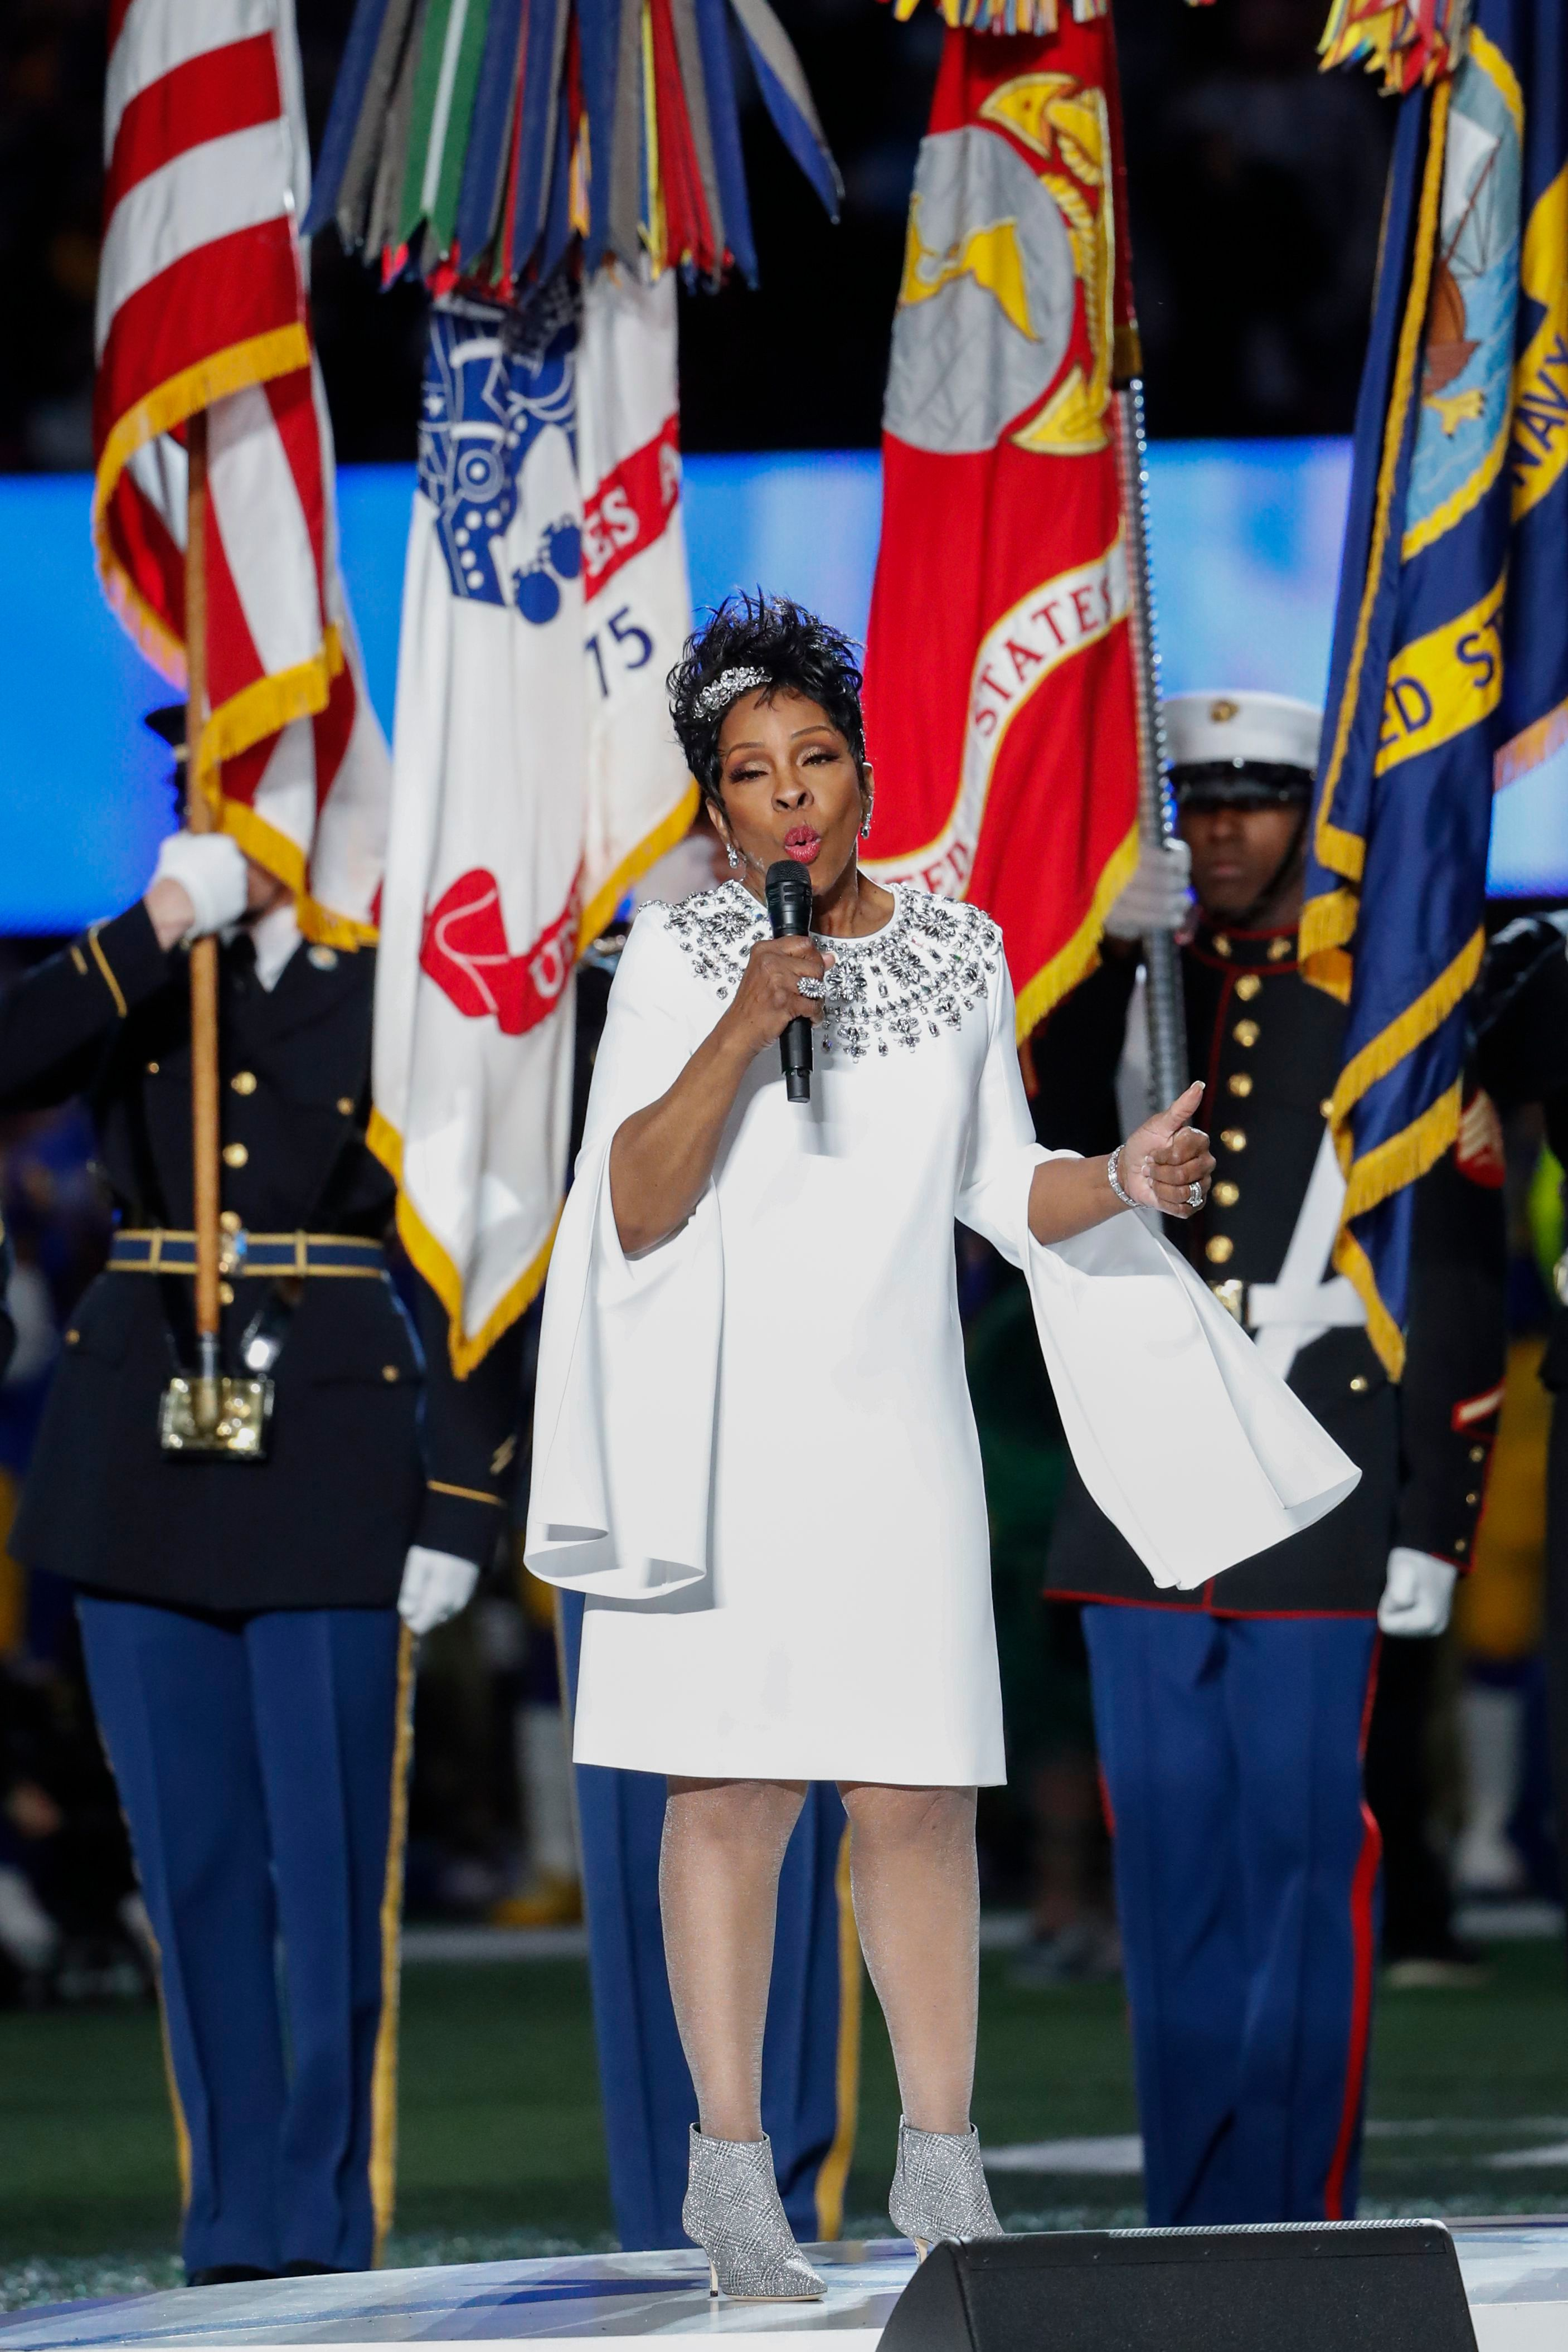 Gladys Knight sings 'The Star-Spangled Banner' on the field prior to Super Bowl LIII between the New England Patriots and the Los Angeles Rams at Mercedes-Benz Stadium in Atlanta, Georgia, USA, 03 February 2019.Super Bowl LIII, Atlanta, USA - 03 Feb 2019